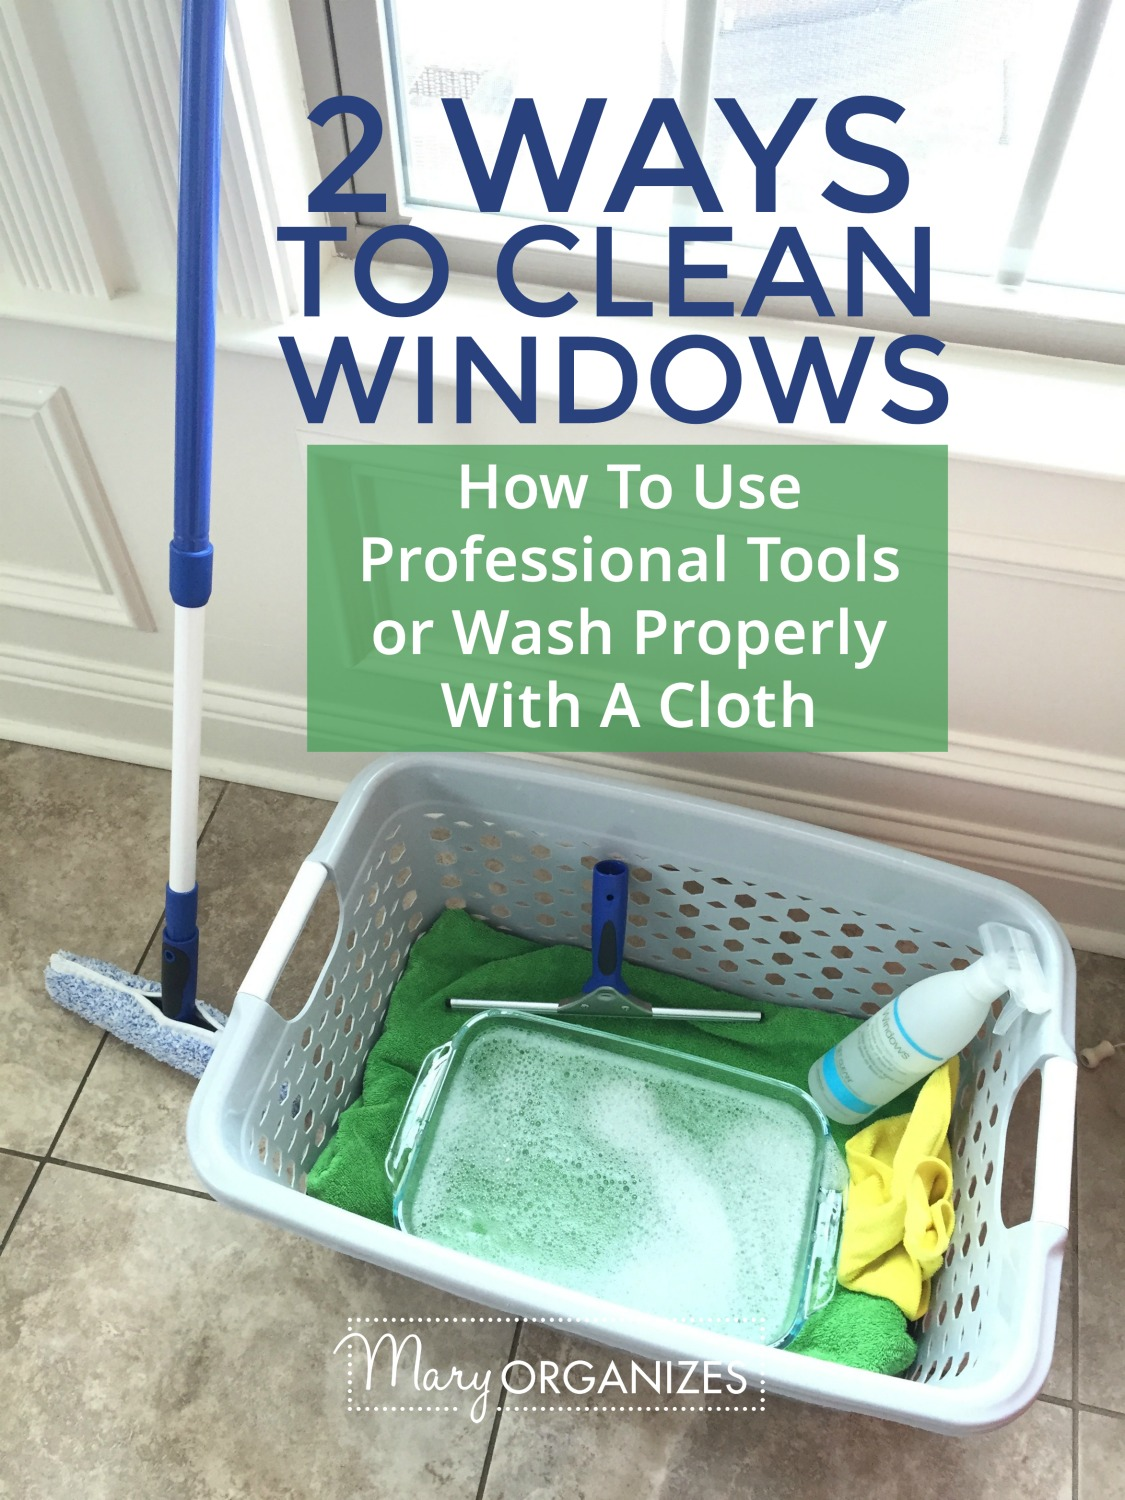 2 Ways To Clean Windows -v